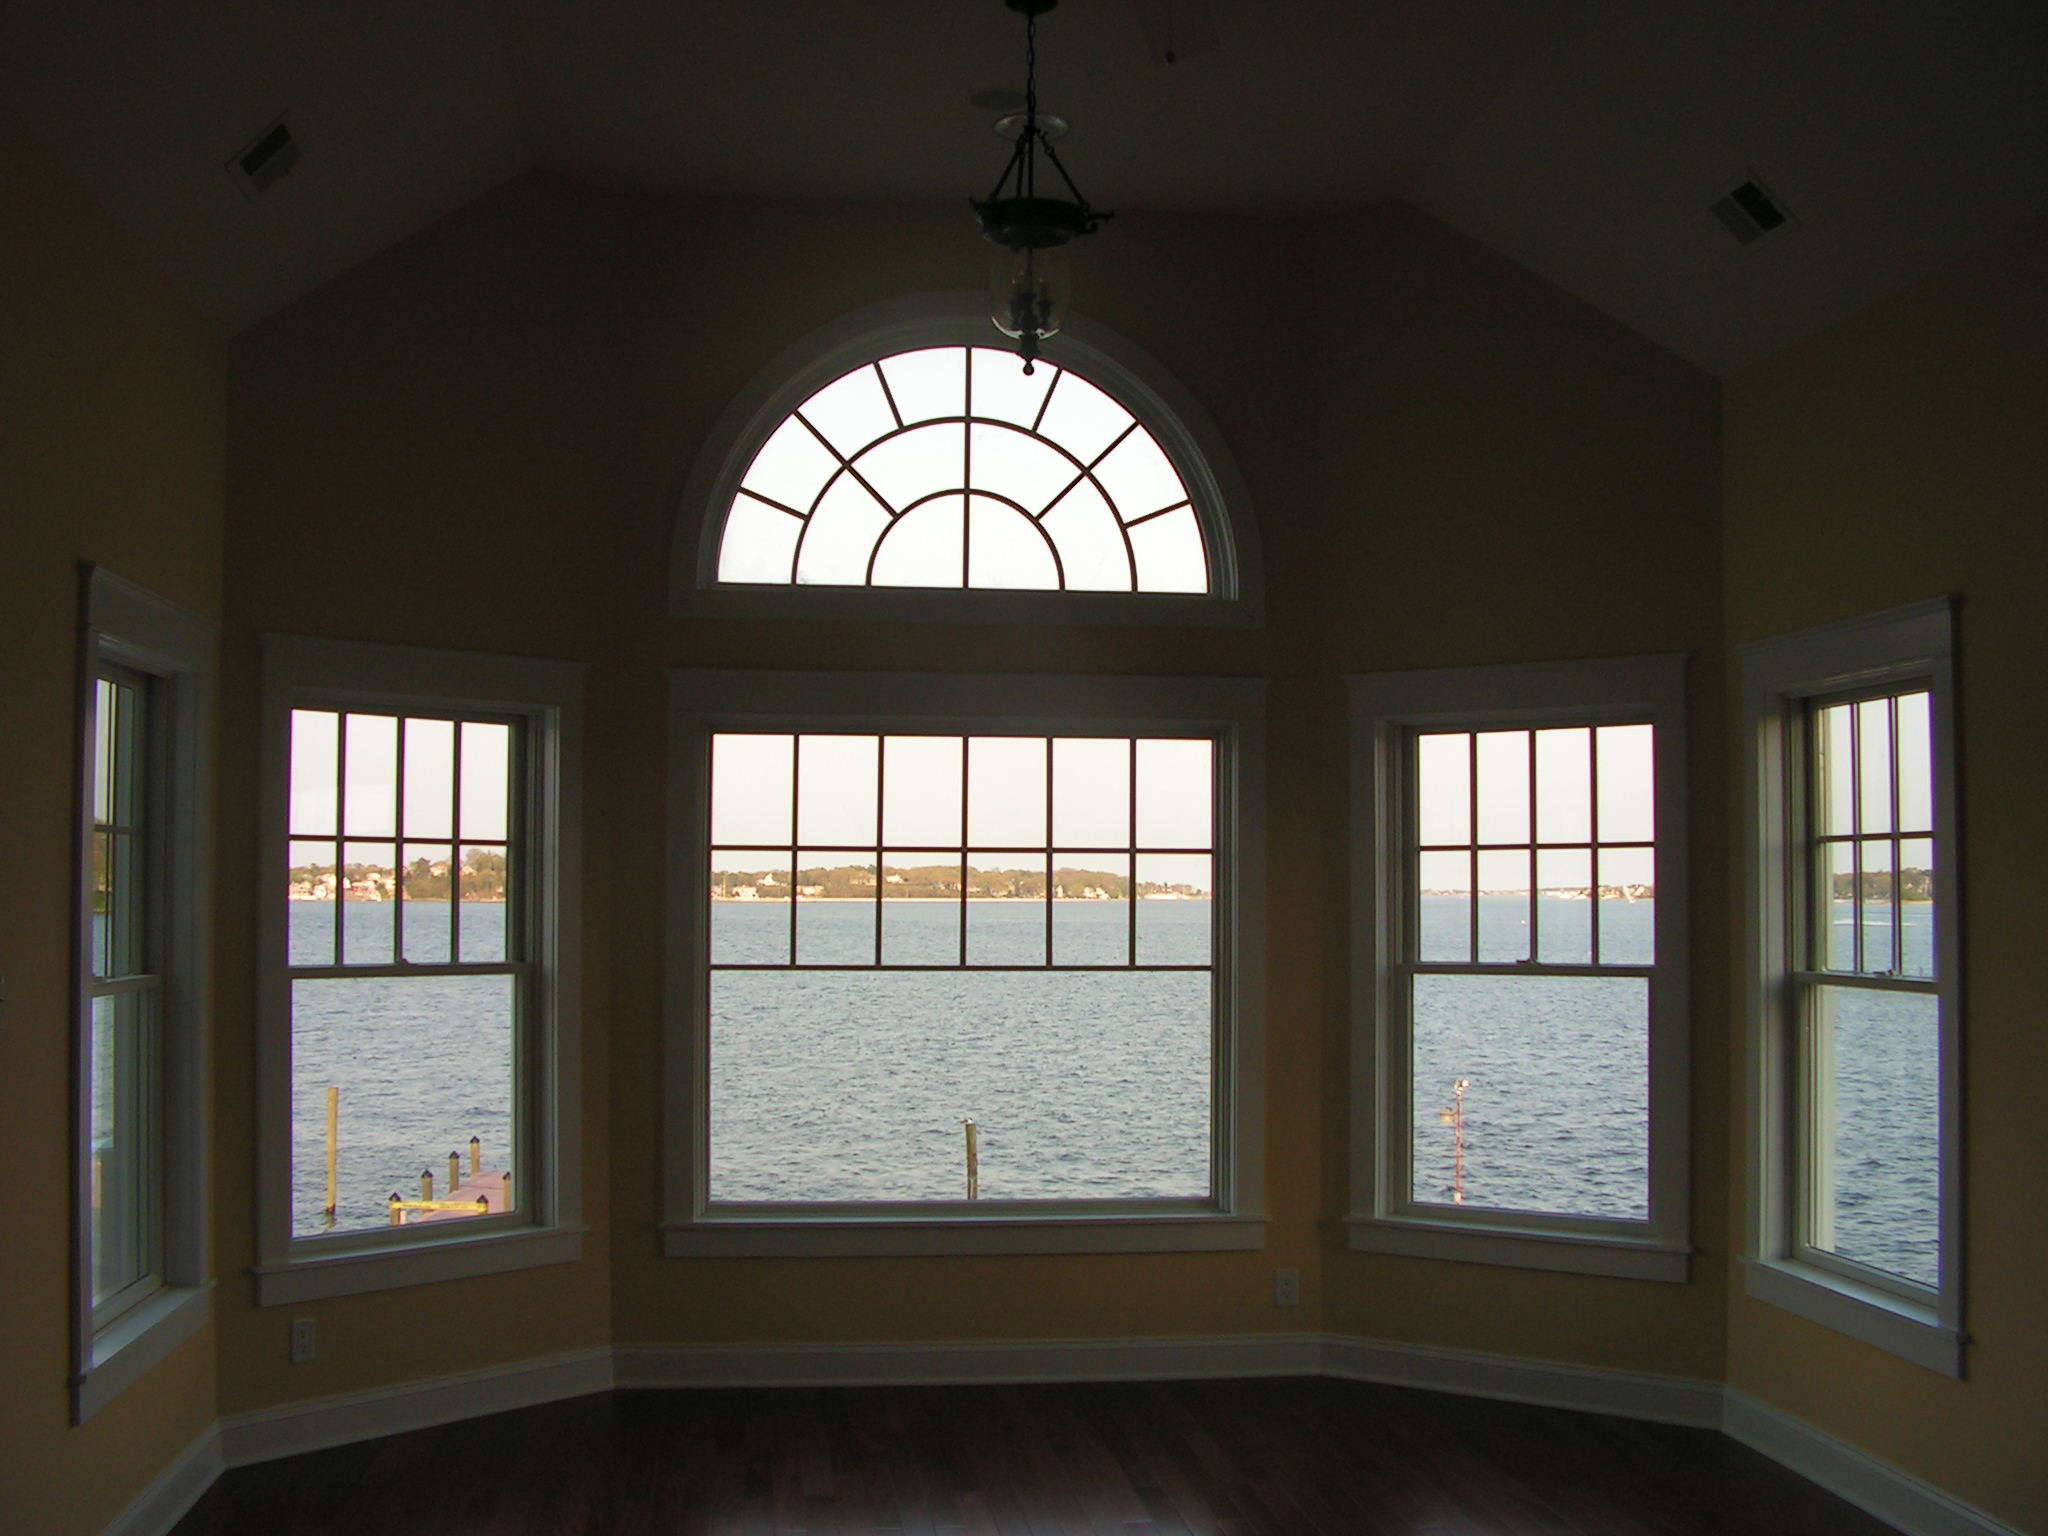 The Windows Installed In This Room Are Anderson Windows